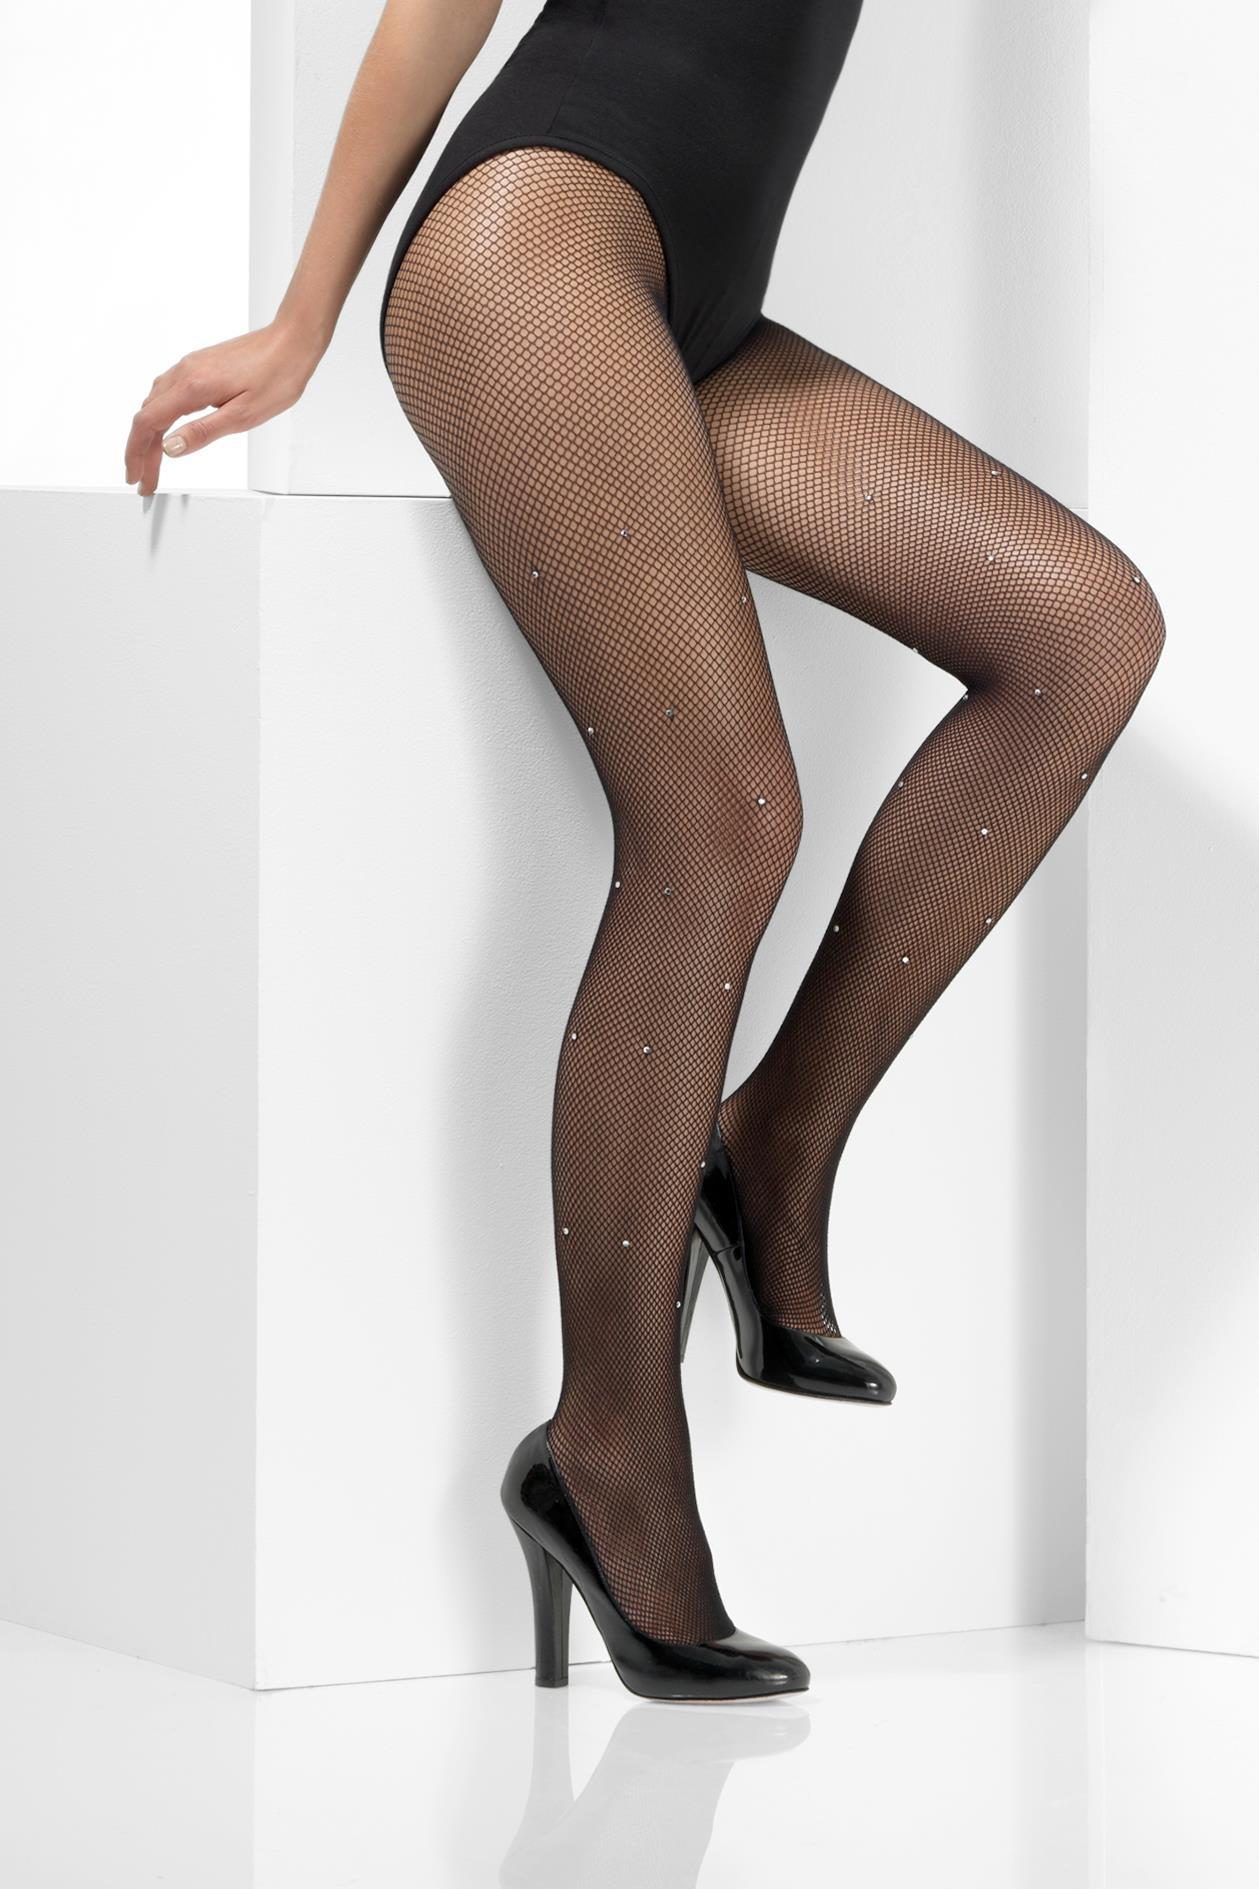 ddafdf003cc63 Crystallised Fishnet Tights Black